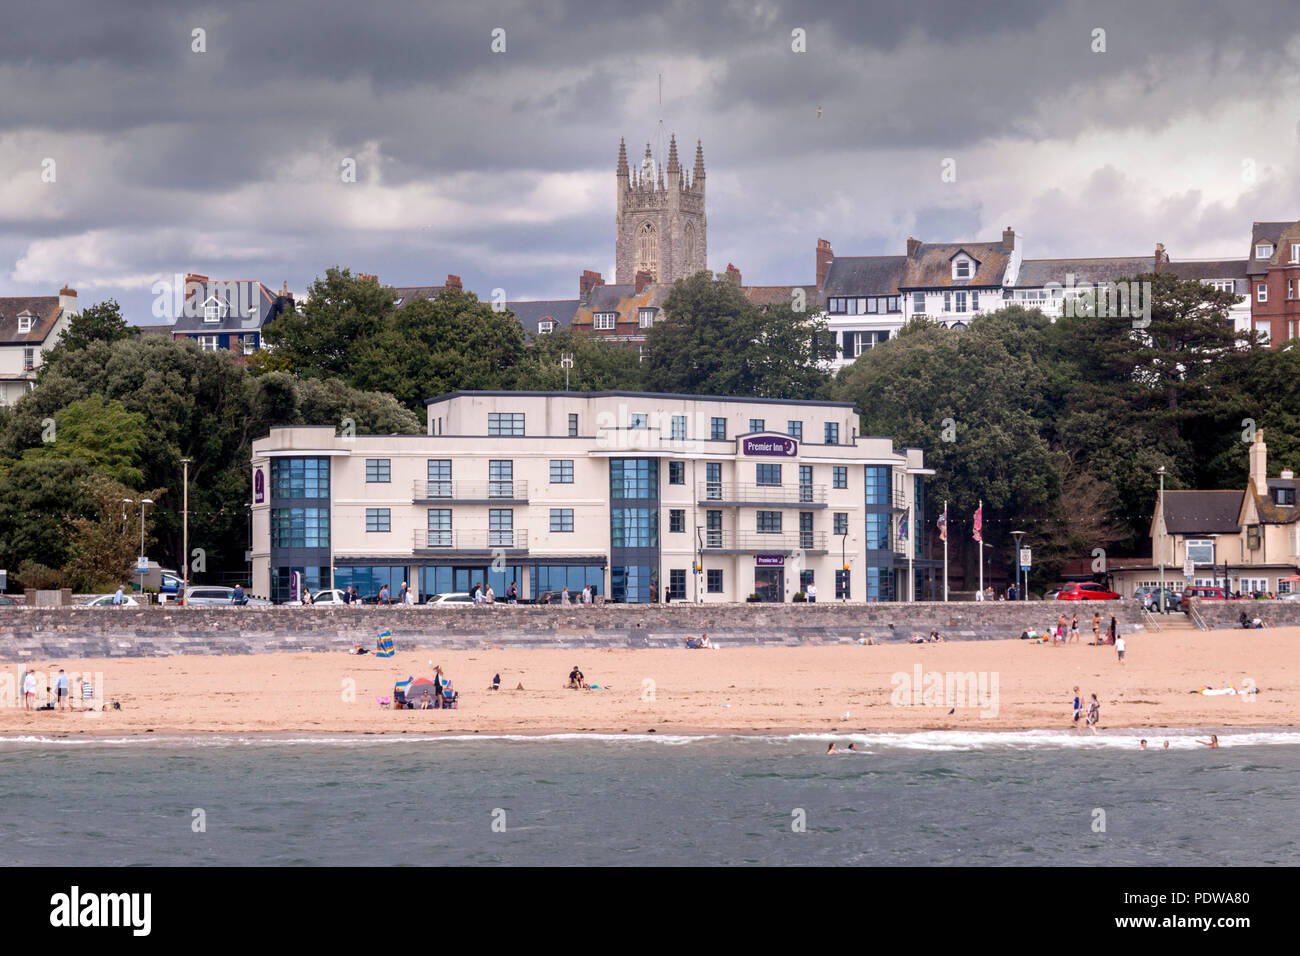 View of Exmouth, with Holy Trinity church, and the Premier Inn on the seafront beside the beach - Stock Image